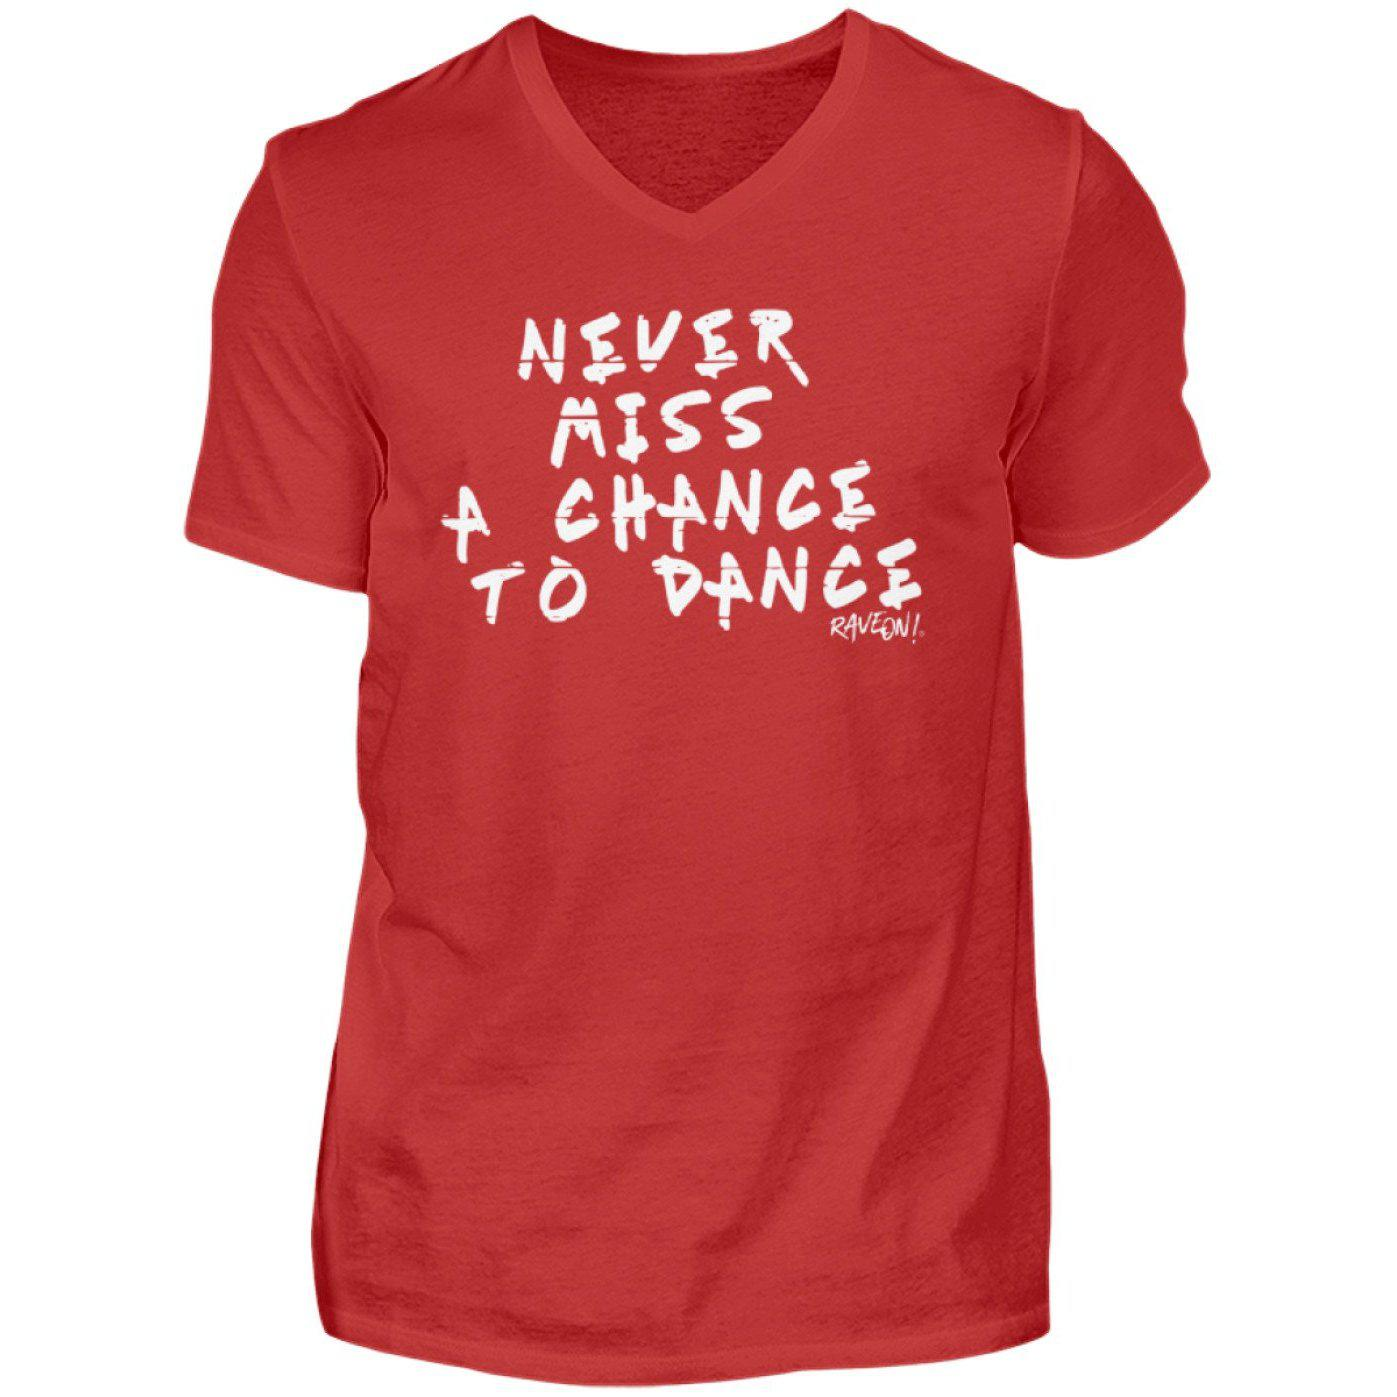 Never Miss A Chance to Dance - Rave On!® - Herren V-Neck Shirt V-Neck Herrenshirt Red / S - Rave On!® der Club & Techno Szene Shop für Coole Junge Mode Streetwear Style & Fashion Outfits + Sexy Festival 420 Stuff